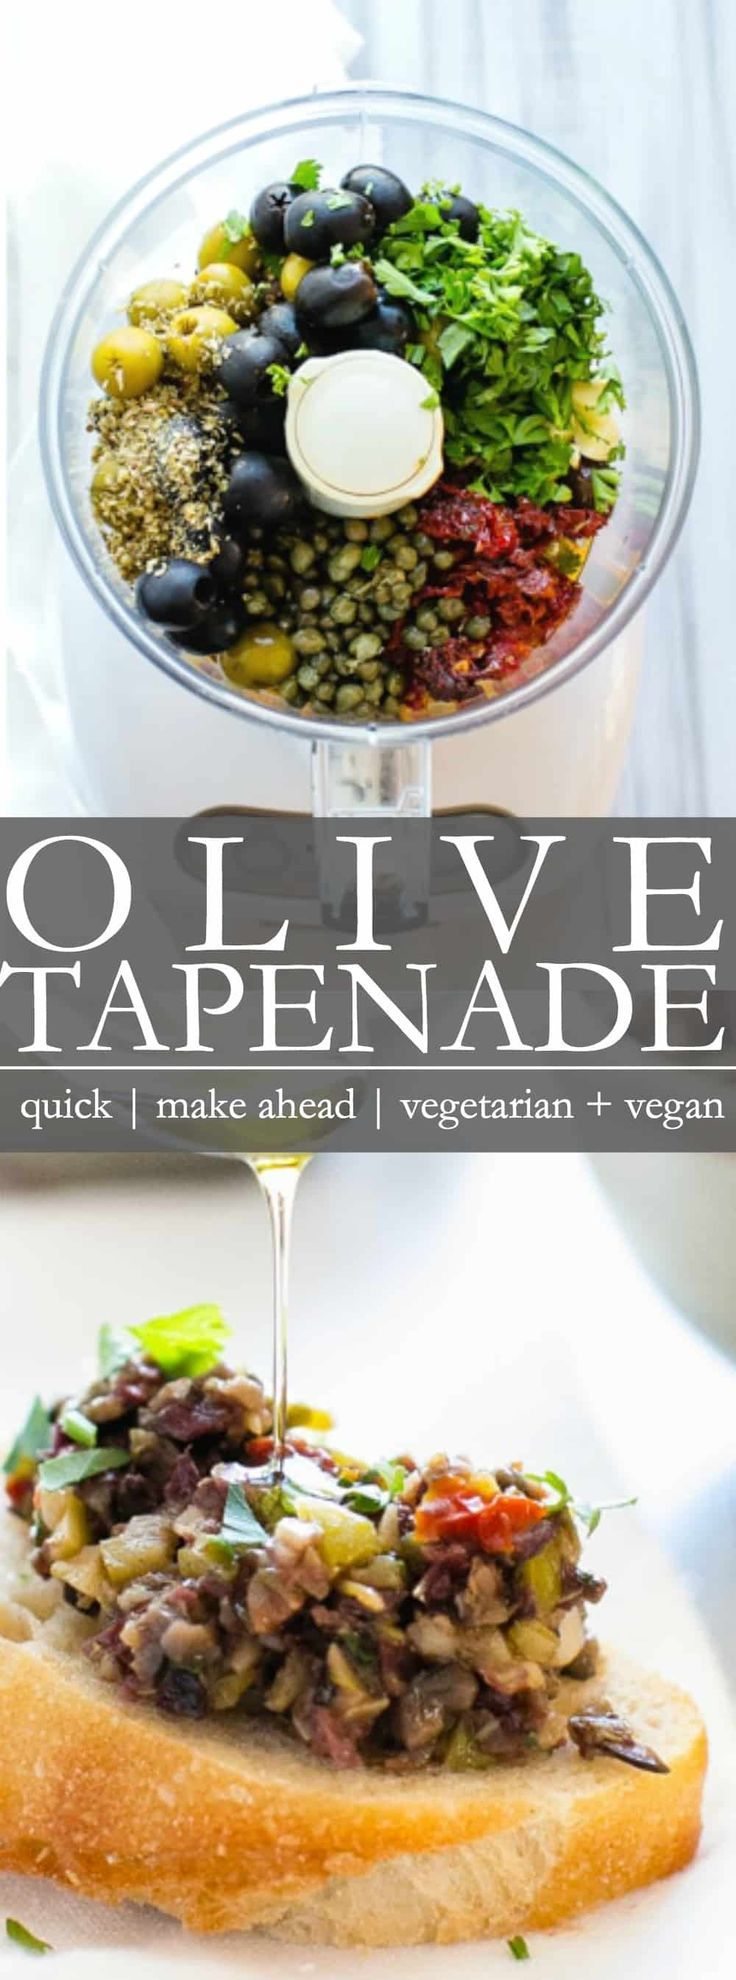 Olive Tapenade | A quick and easy food processor appetizer to pull together for holidays, parties, tailgating or just to have a snack on hand! Everyone LOVES this stuff! This recipe is vegetarian + vegan + gluten free #holidayparties